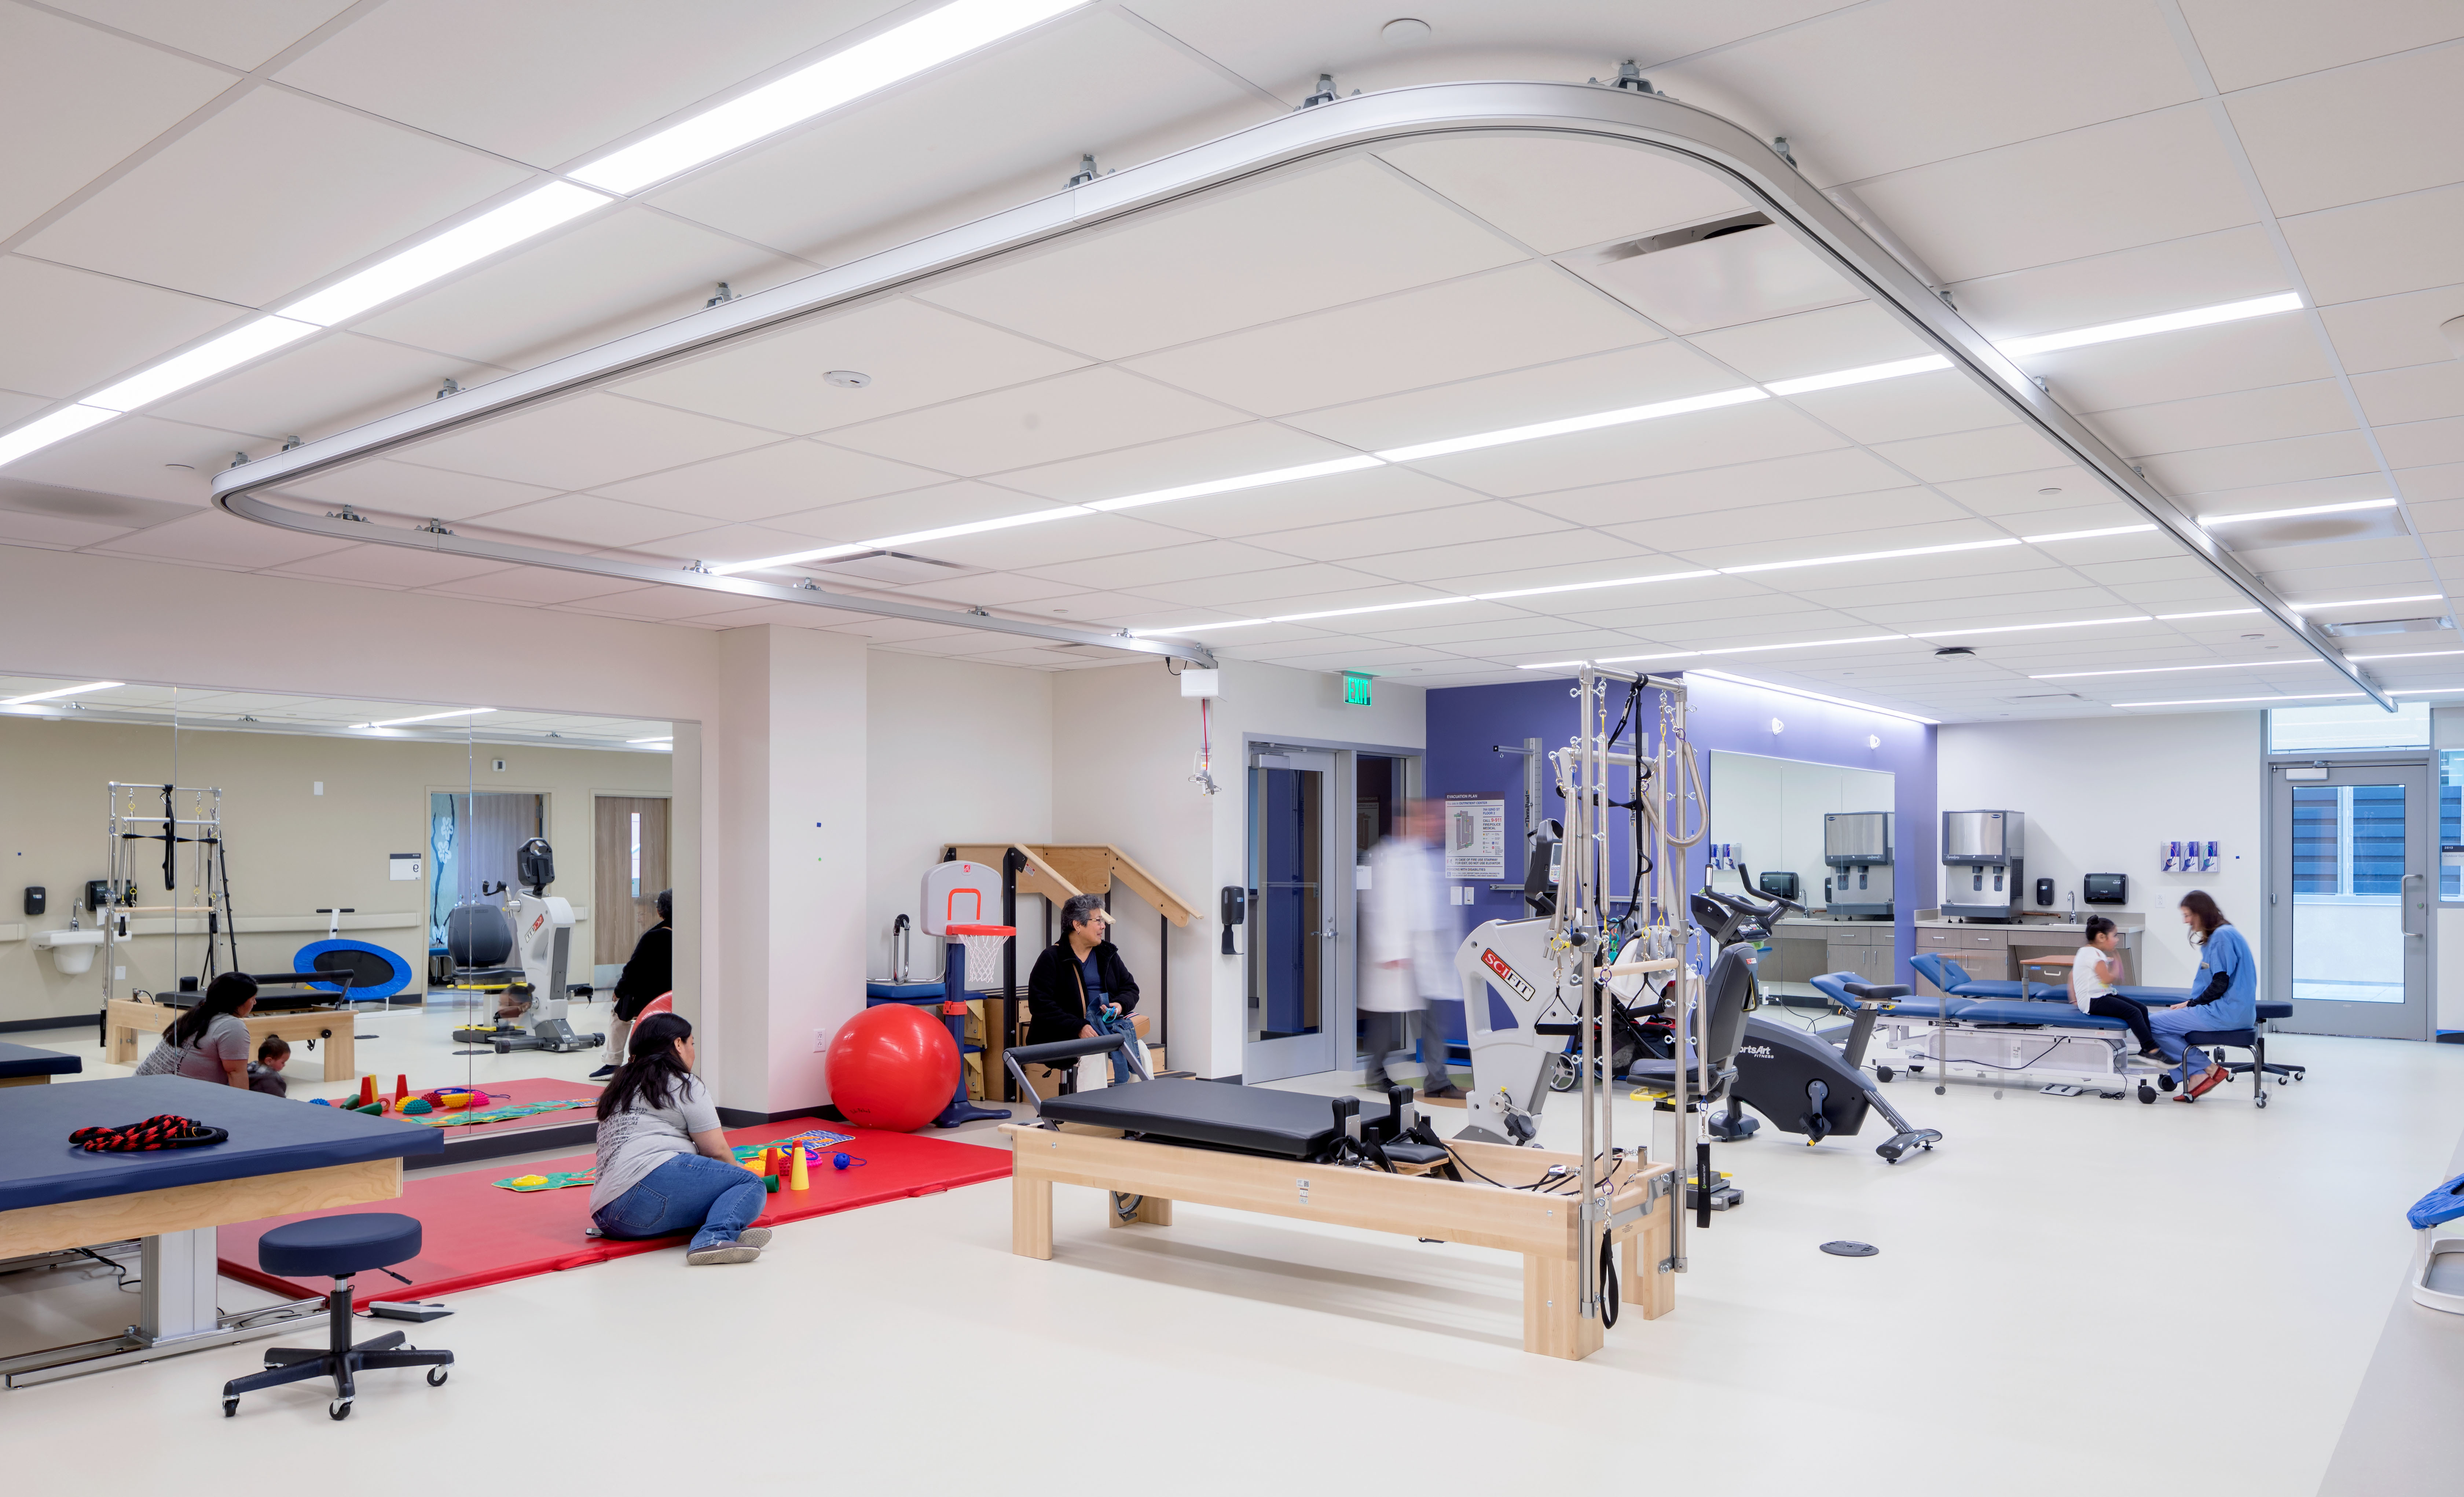 Image of UCSF Benioff Children's Hospital Outpatient Center